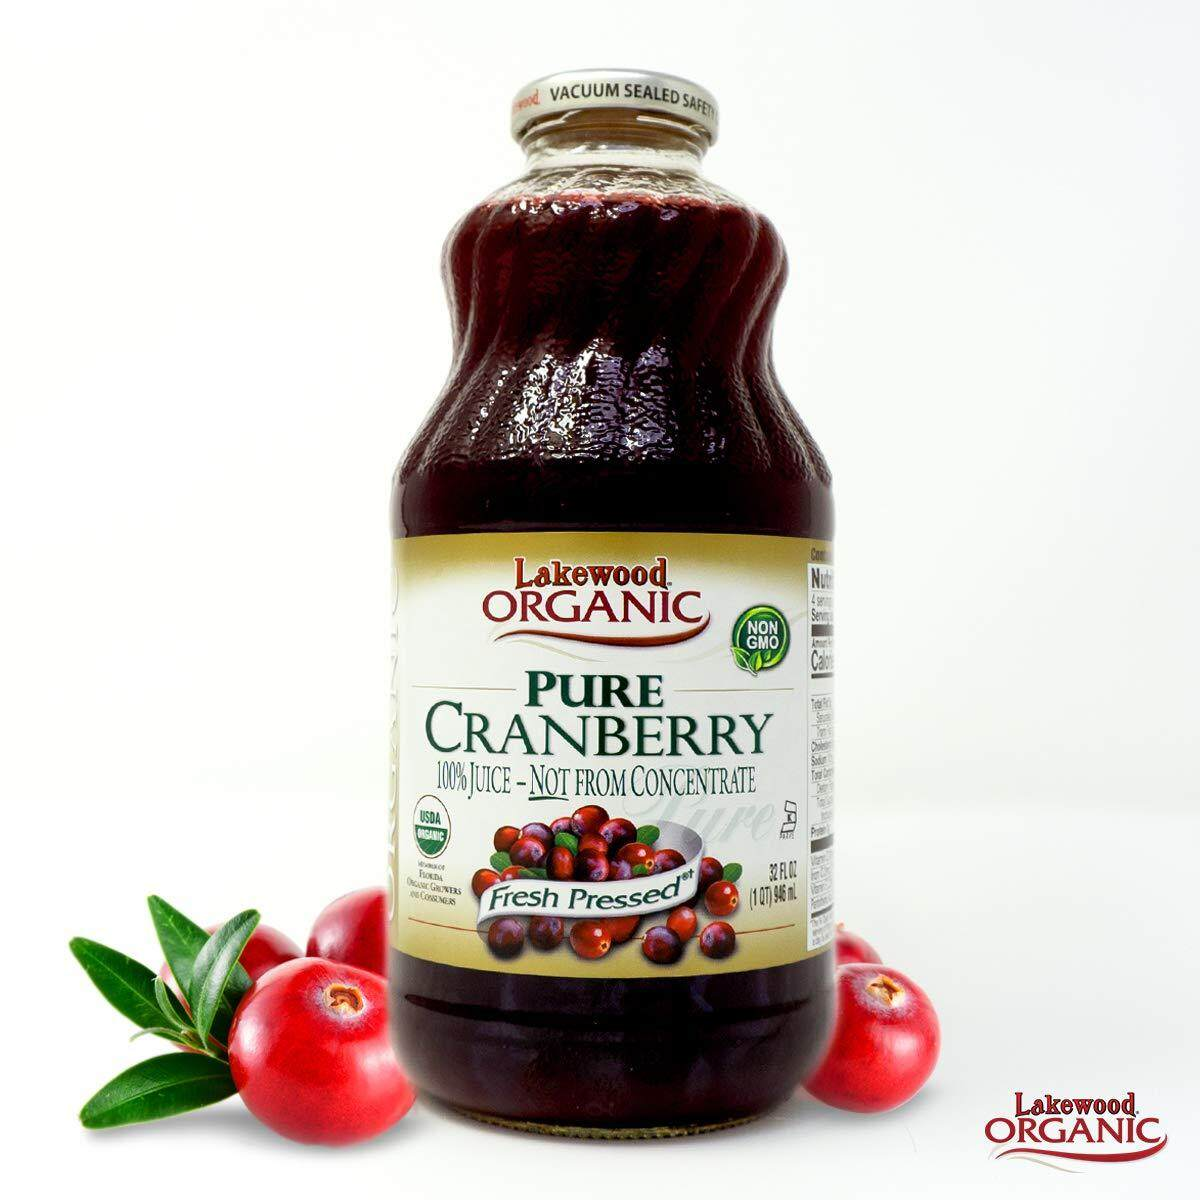 [MPLUS] LAKEWOOD PURE CRANBERRY JUICE ORG 32OZ